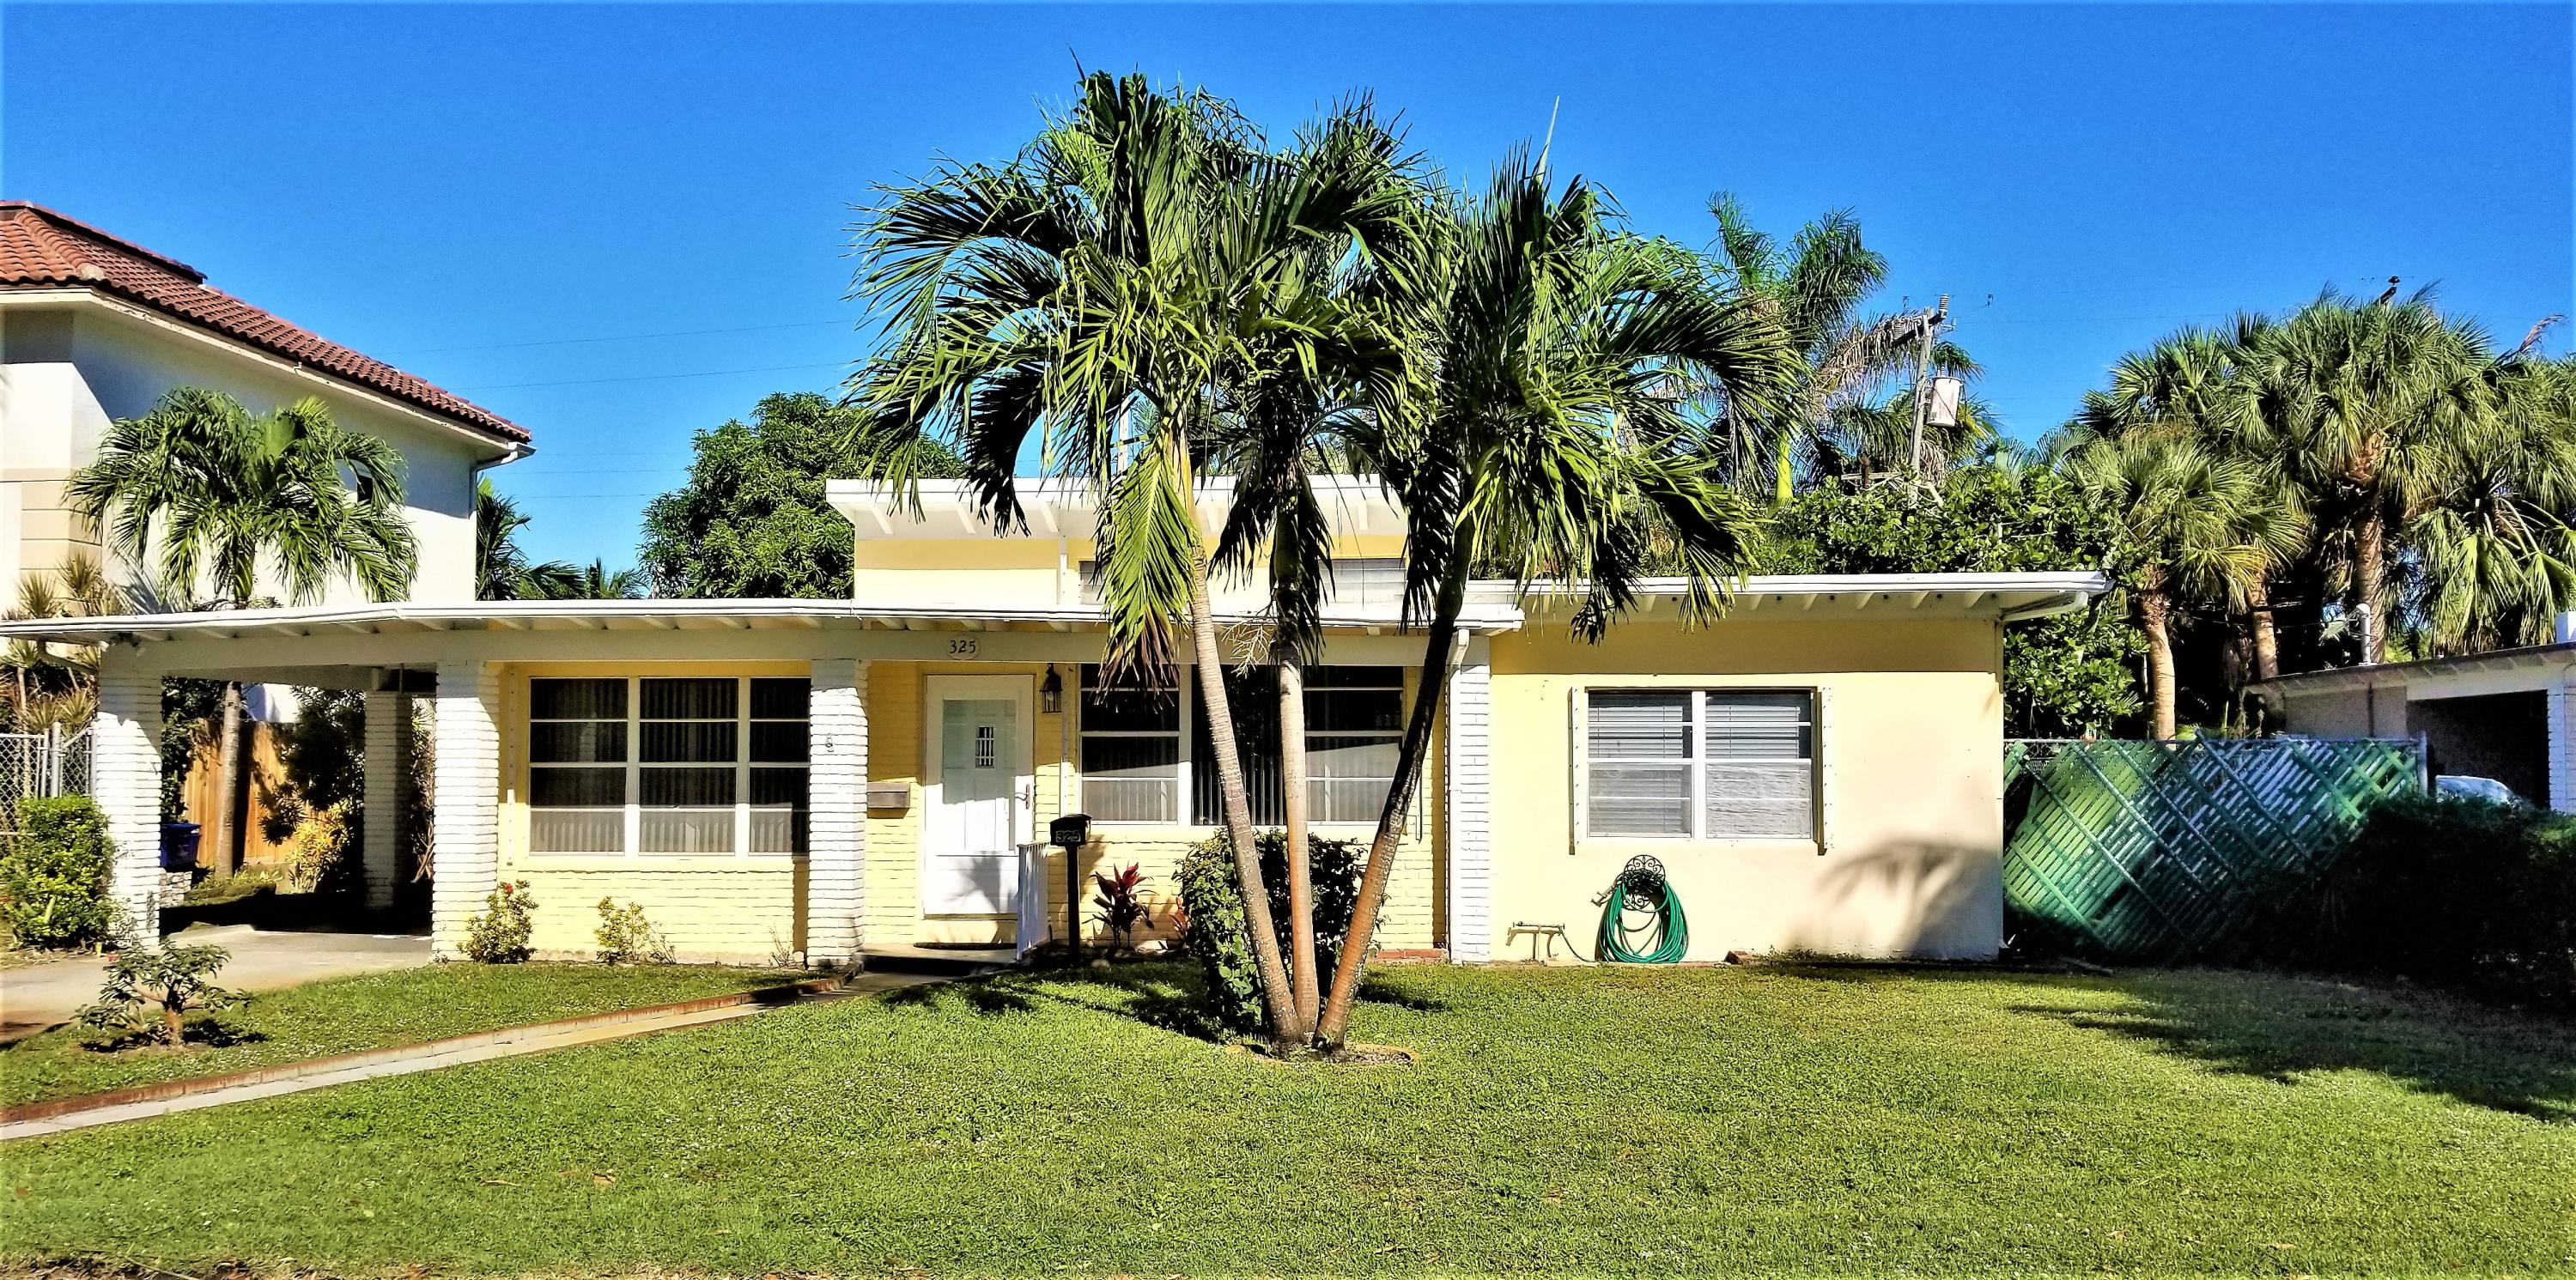 325 Rilyn Drive, West Palm Beach, Florida 33405, 2 Bedrooms Bedrooms, ,1 BathroomBathrooms,Rental,For Rent,Rilyn,RX-10587739